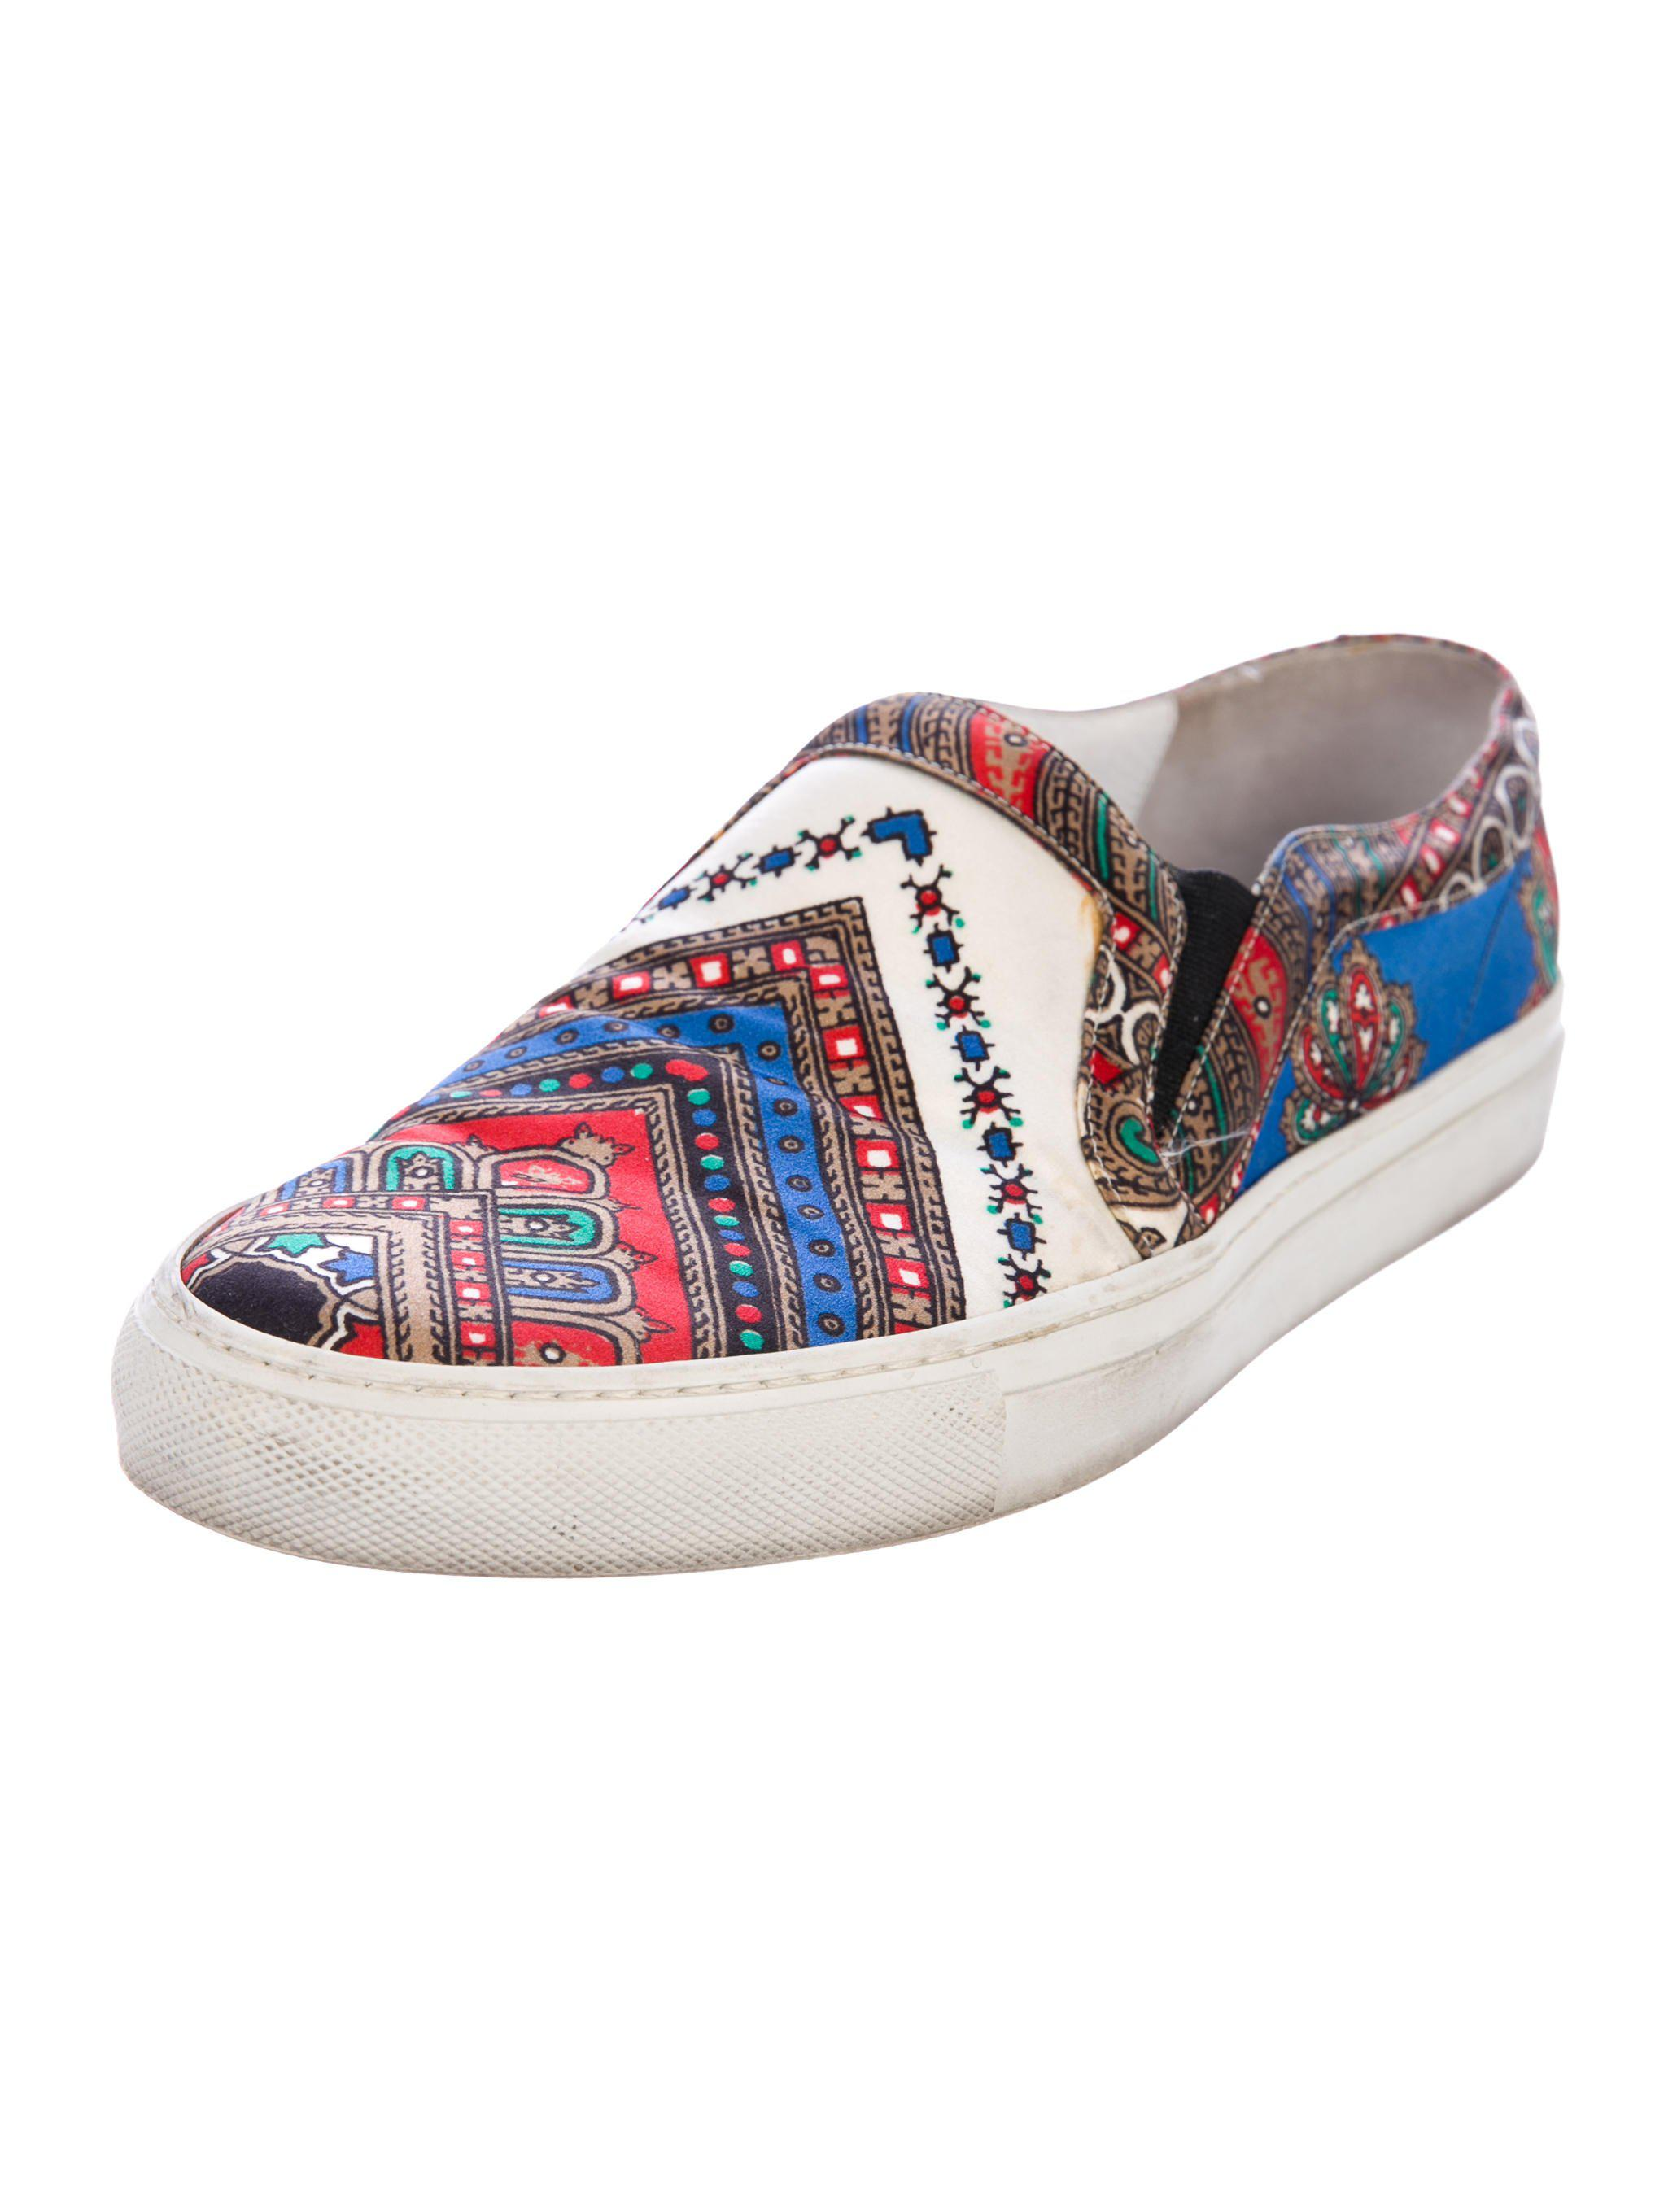 Givenchy Printed Satin Slip-On Sneakers discount visit Qeqmsh